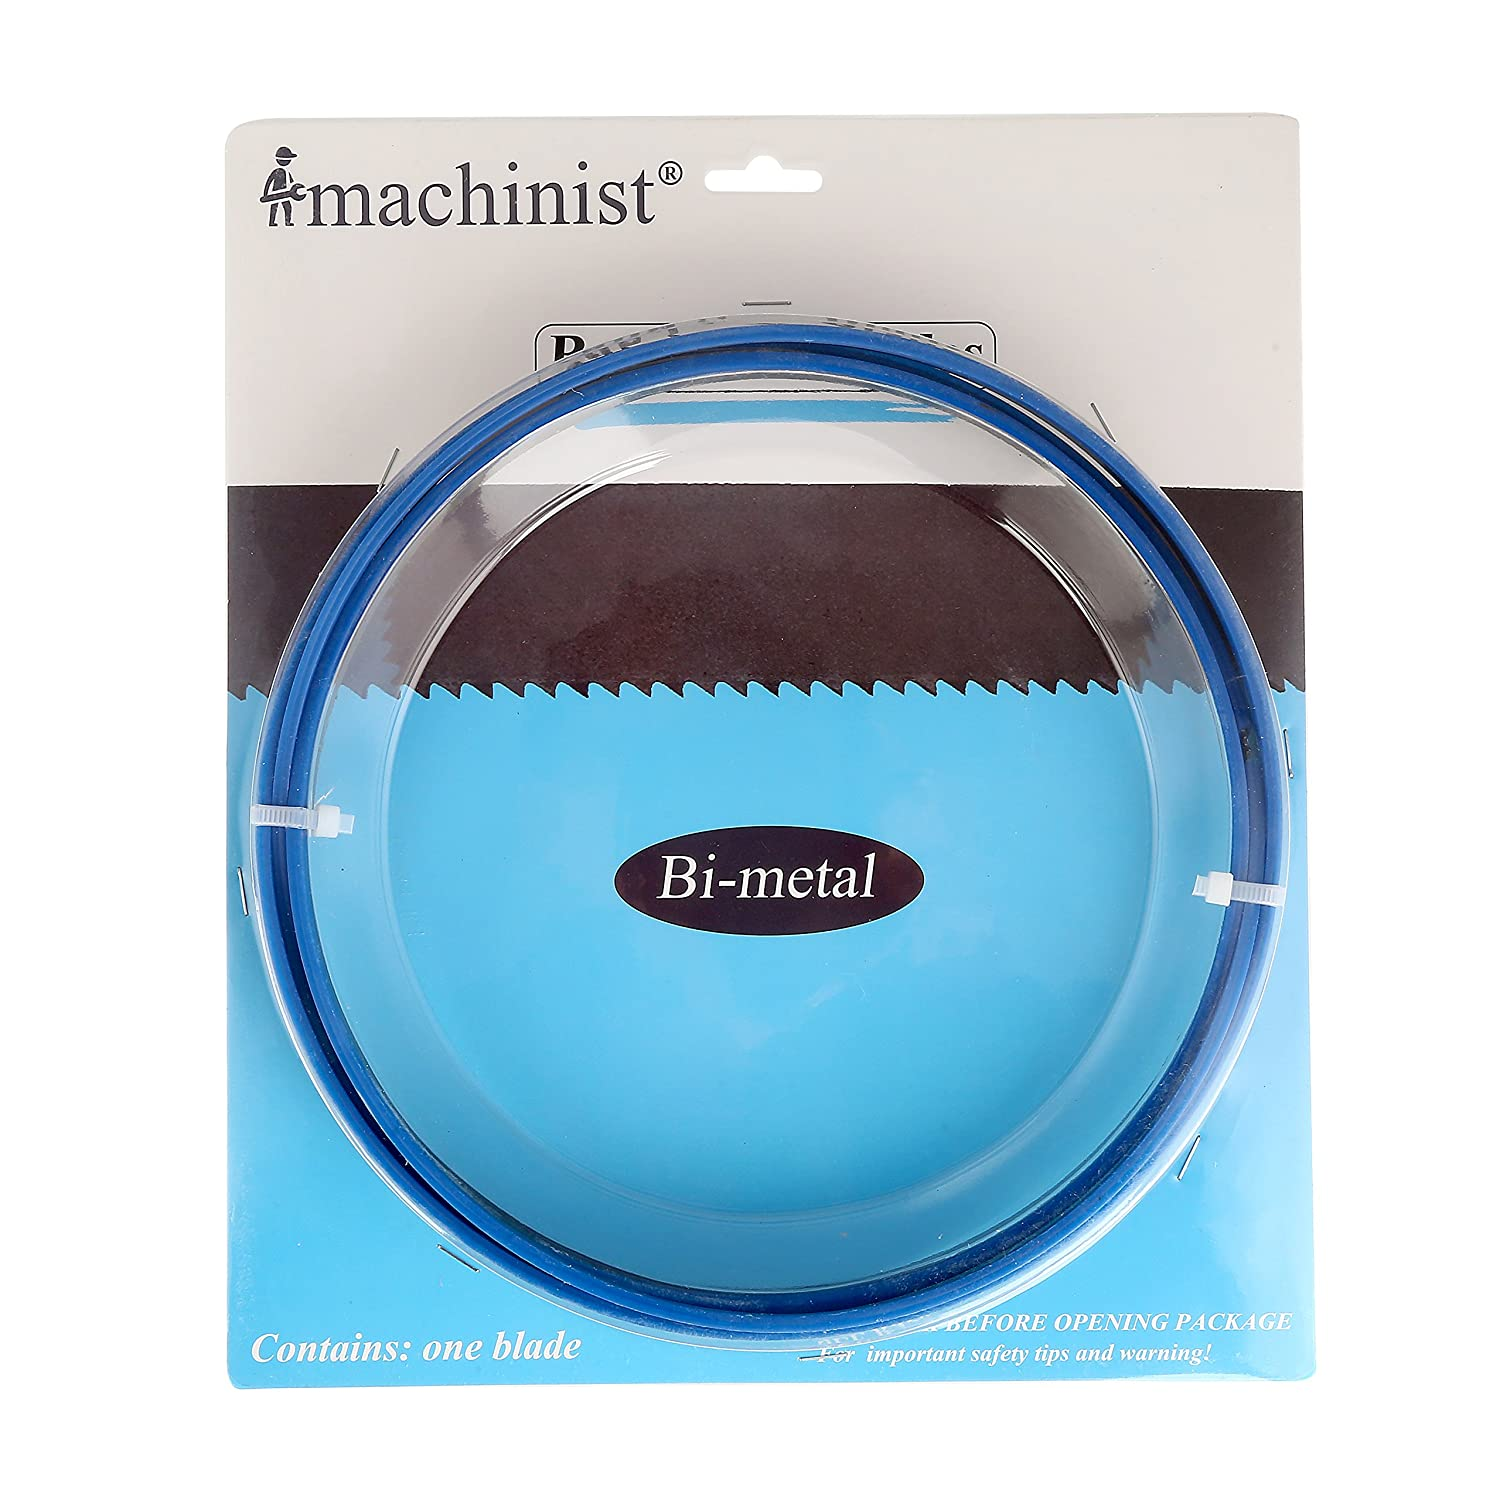 Imachinist 93-1/2' Long, 3/4' Wide, 0.035' Thick M42 Bi-metal Bandsaw Blades for Soft Metal Cutting (14TPI)